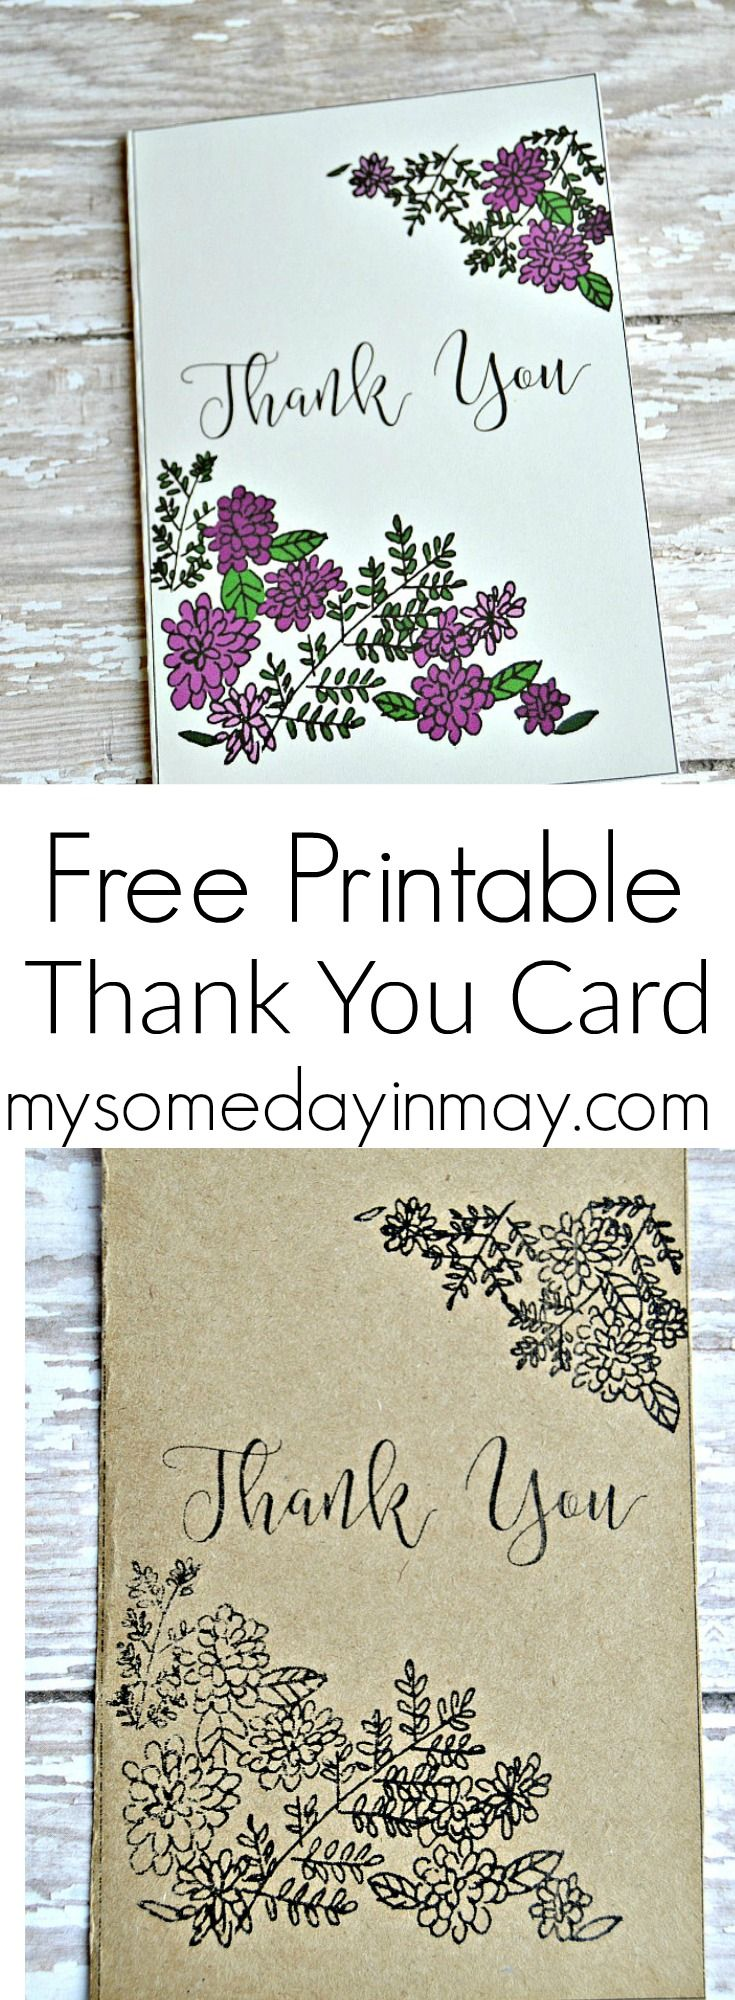 Free printable thank you cards someday in may prints